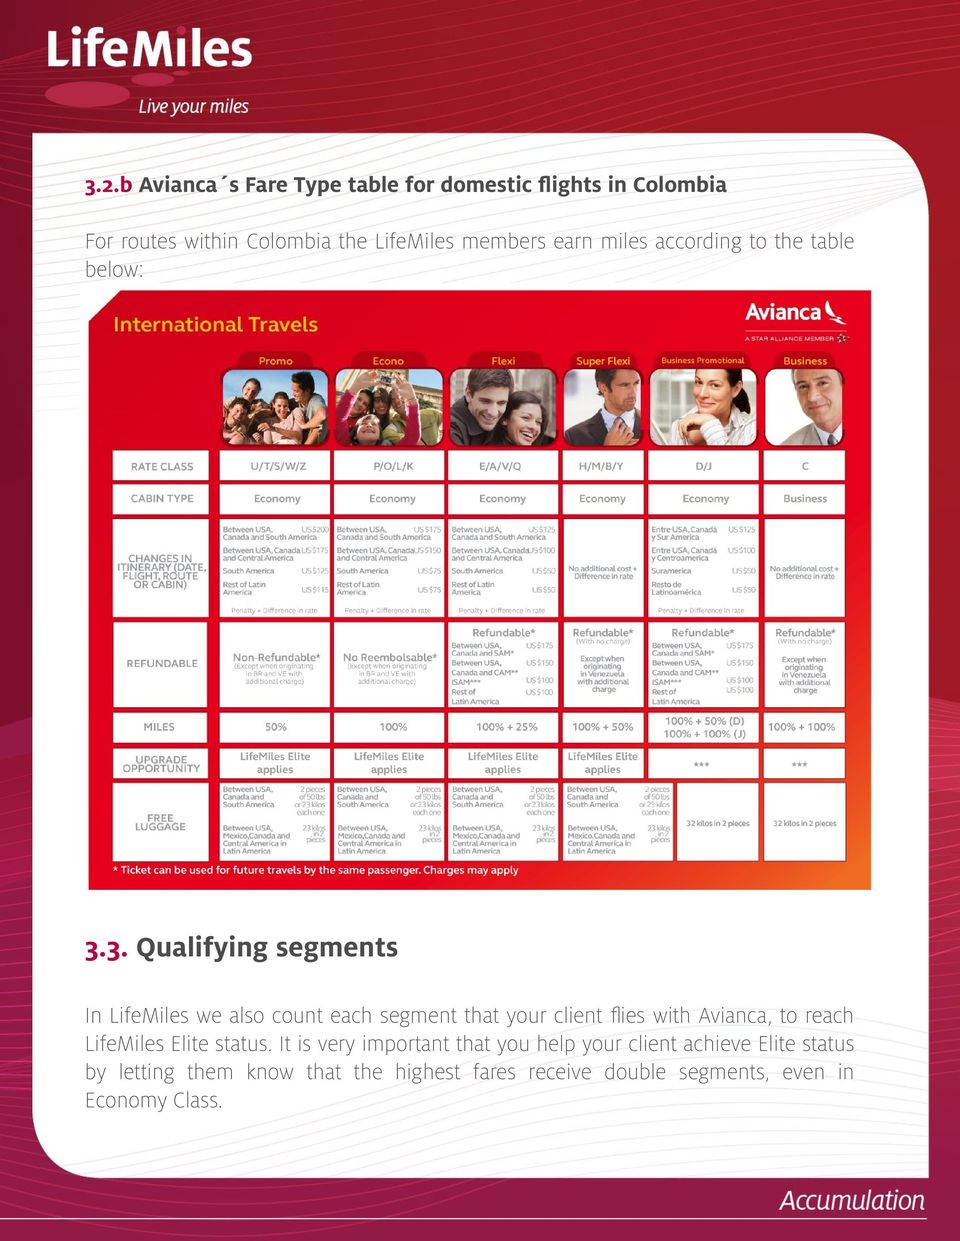 3. Qualifying segments In LifeMiles we also count each segment that your client fies with Avianca, to reach